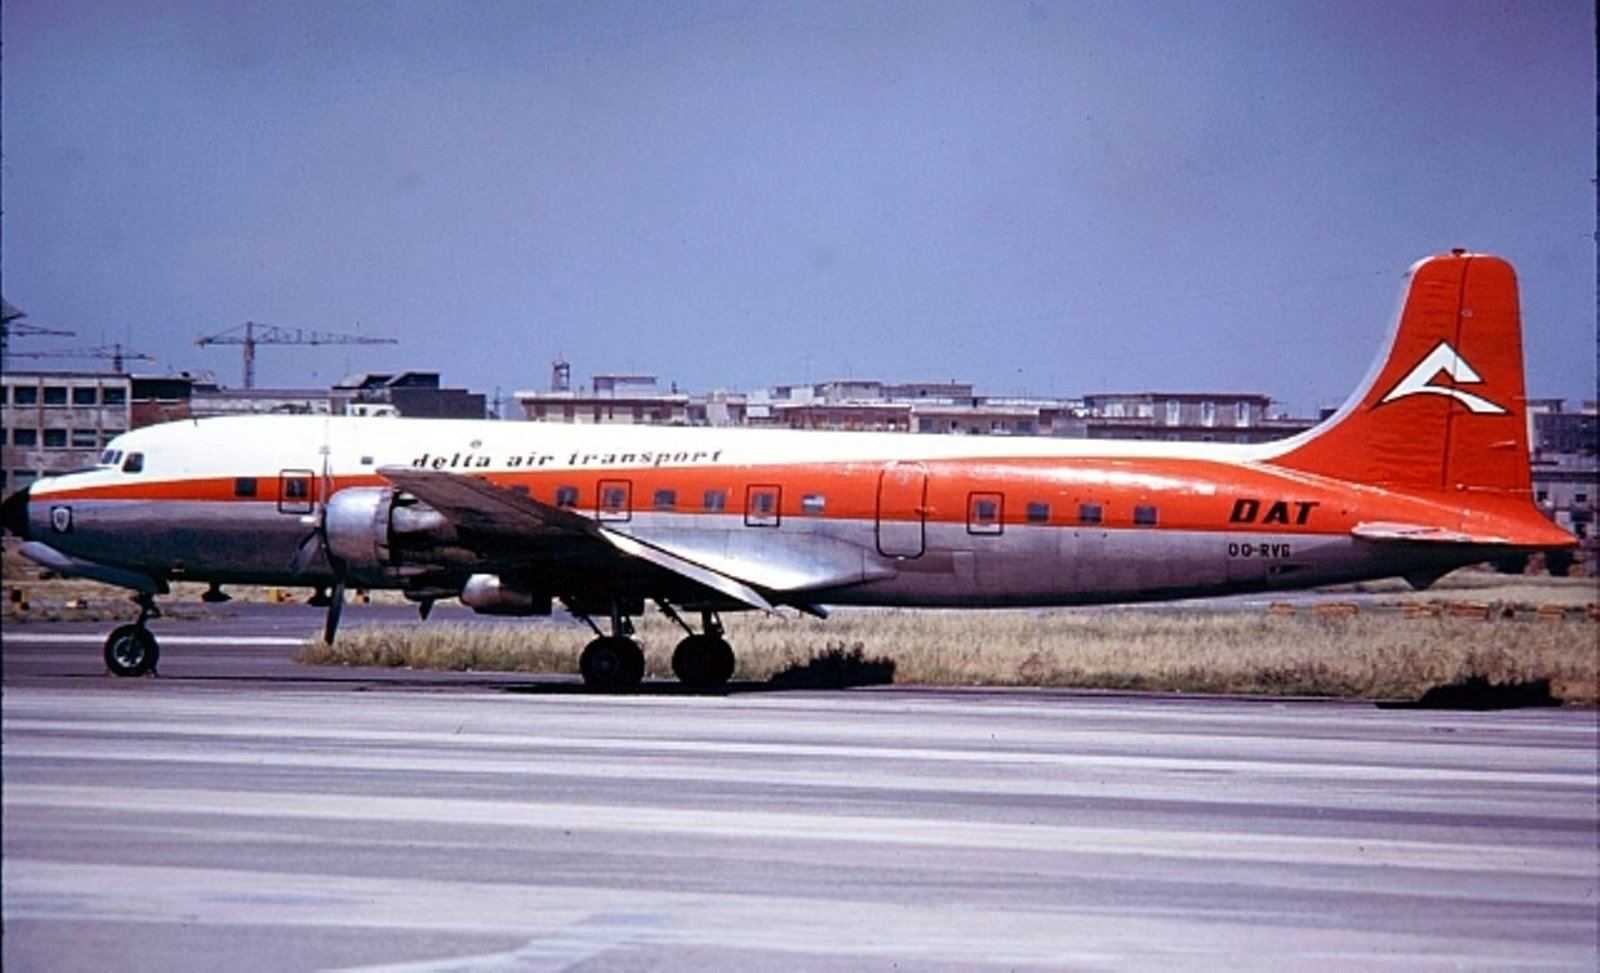 Douglas DC-6B - Delta Air Transport - in Napoli1972